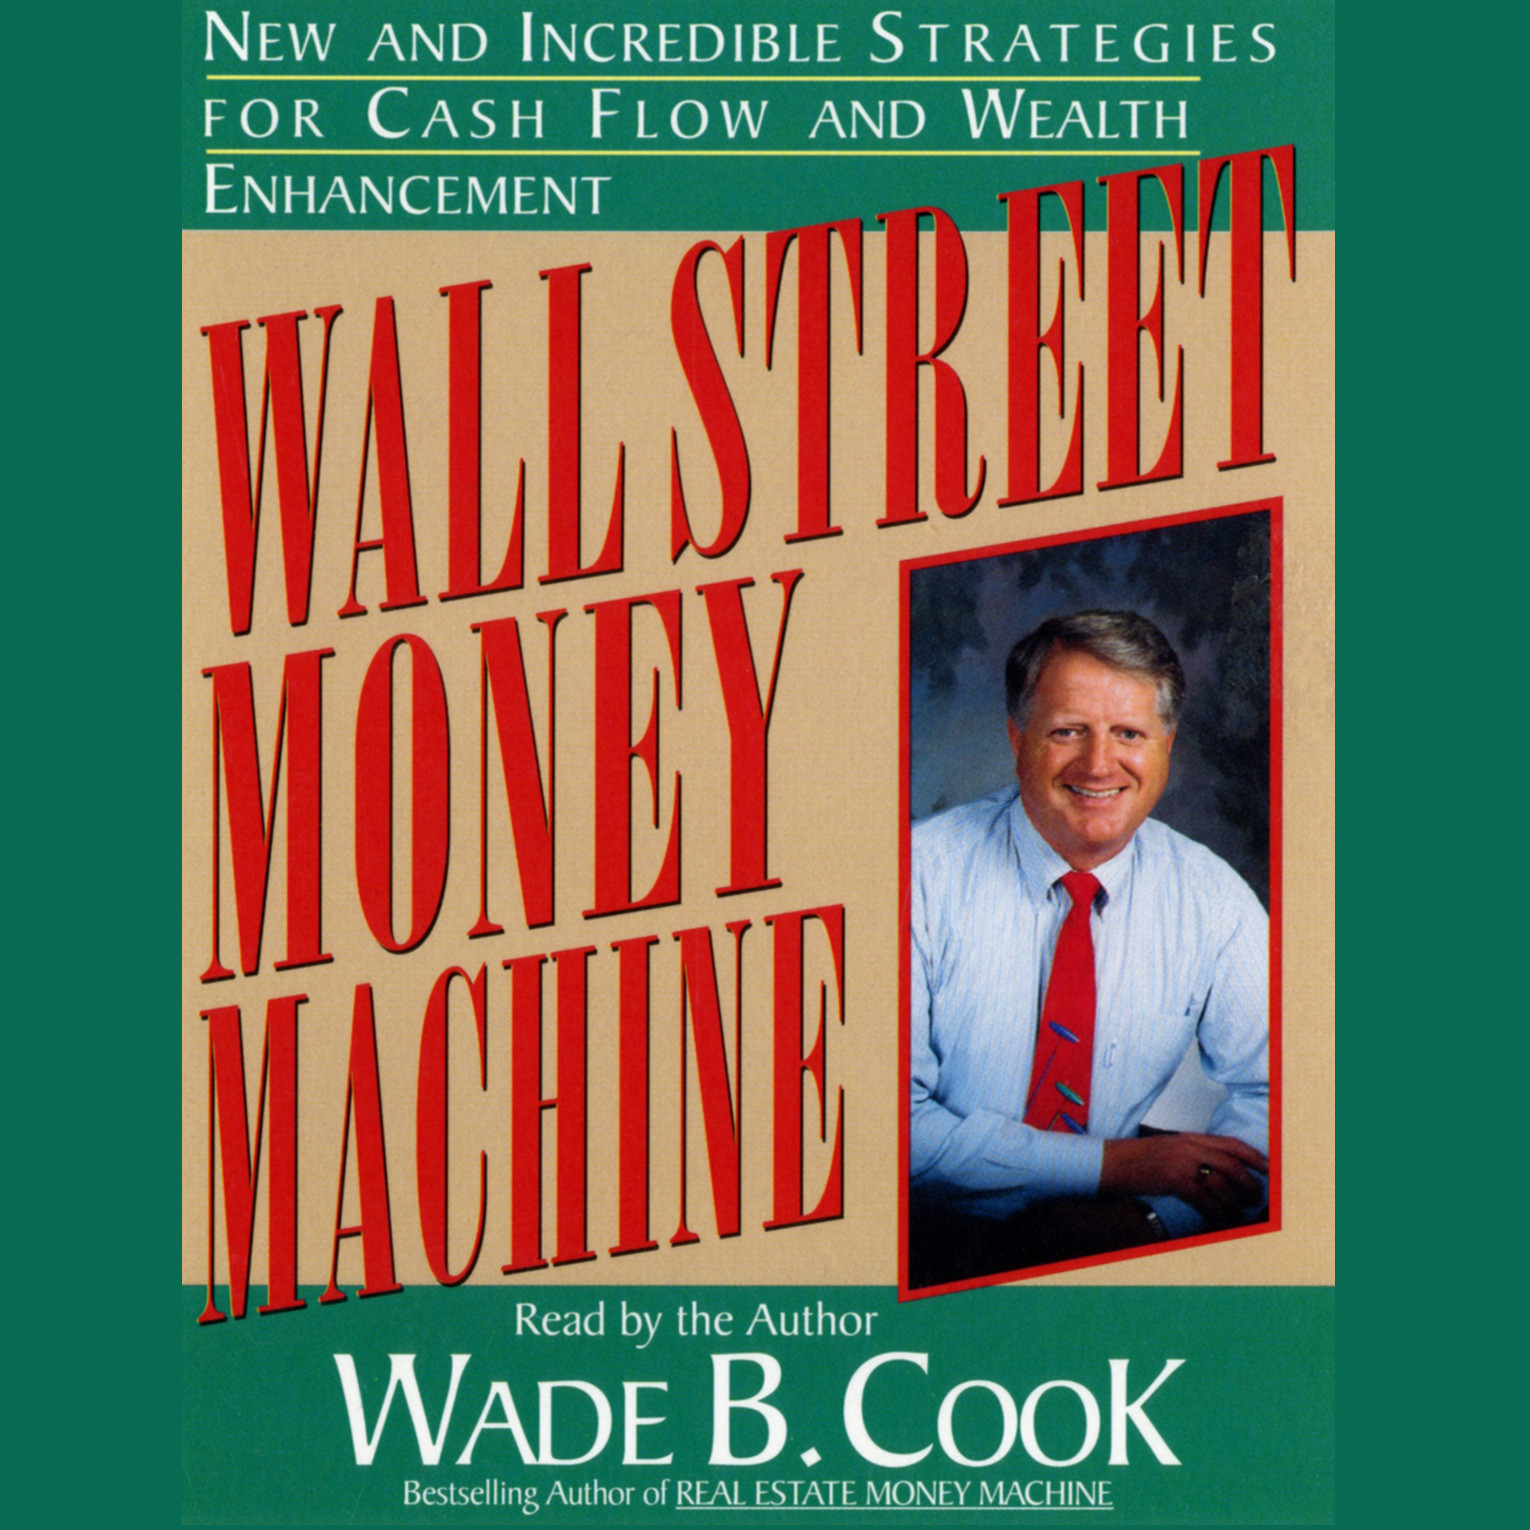 Printable Wall Street Money Machine: New and Incredible Strategies for Cash Flow and Wealth Enhancement Audiobook Cover Art